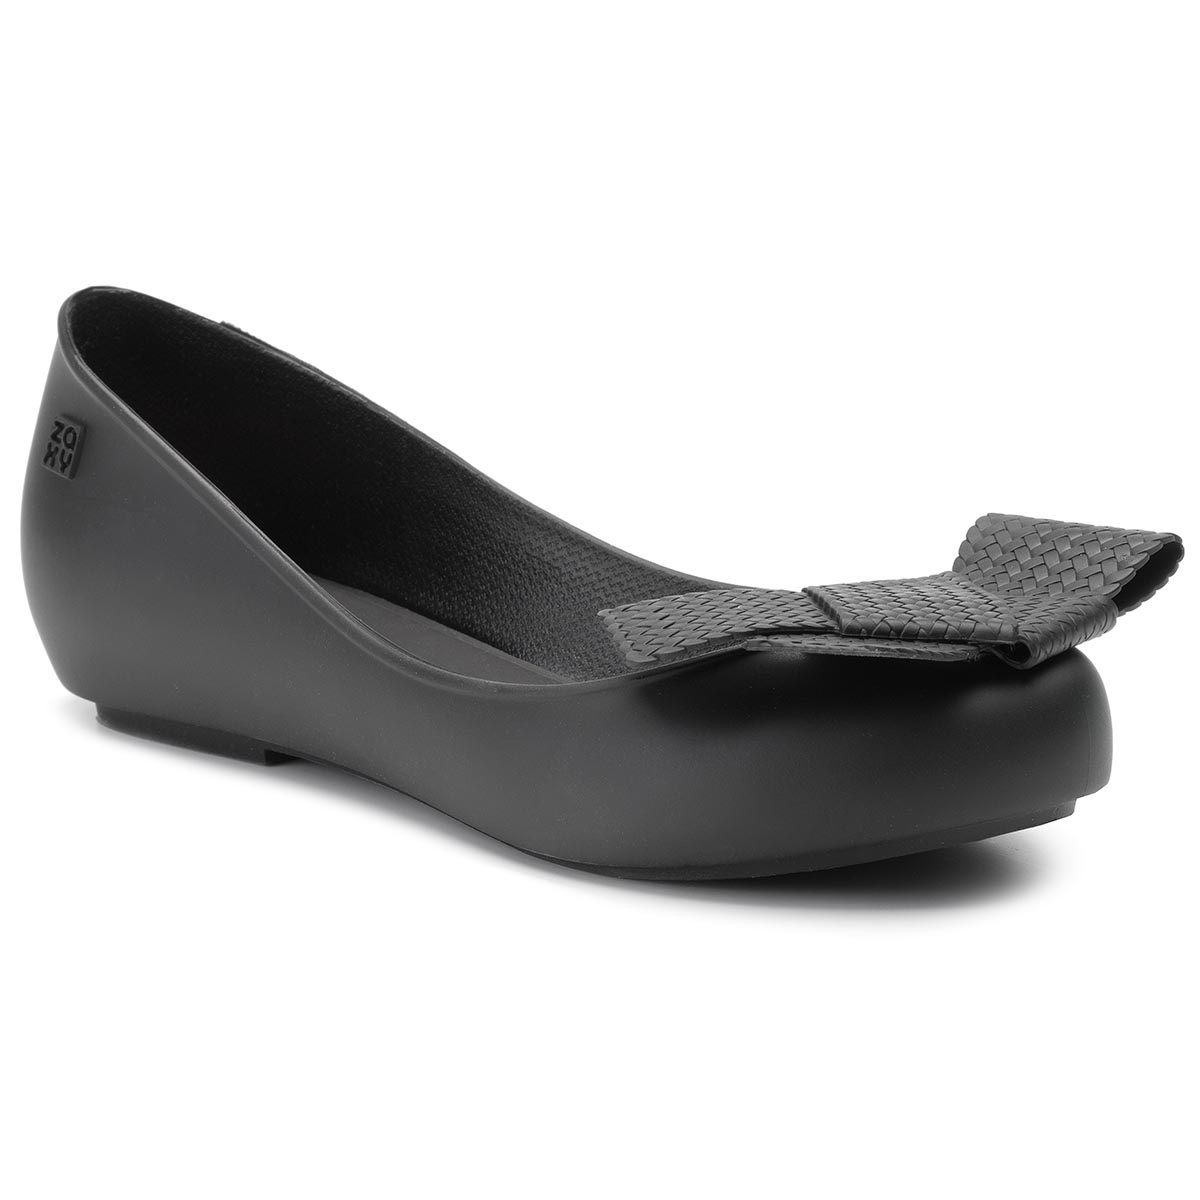 Balerini Zaxy - New Pop Elegance Fem 82771 Black 01003 Ee285007 02064 imagine epantofi.ro